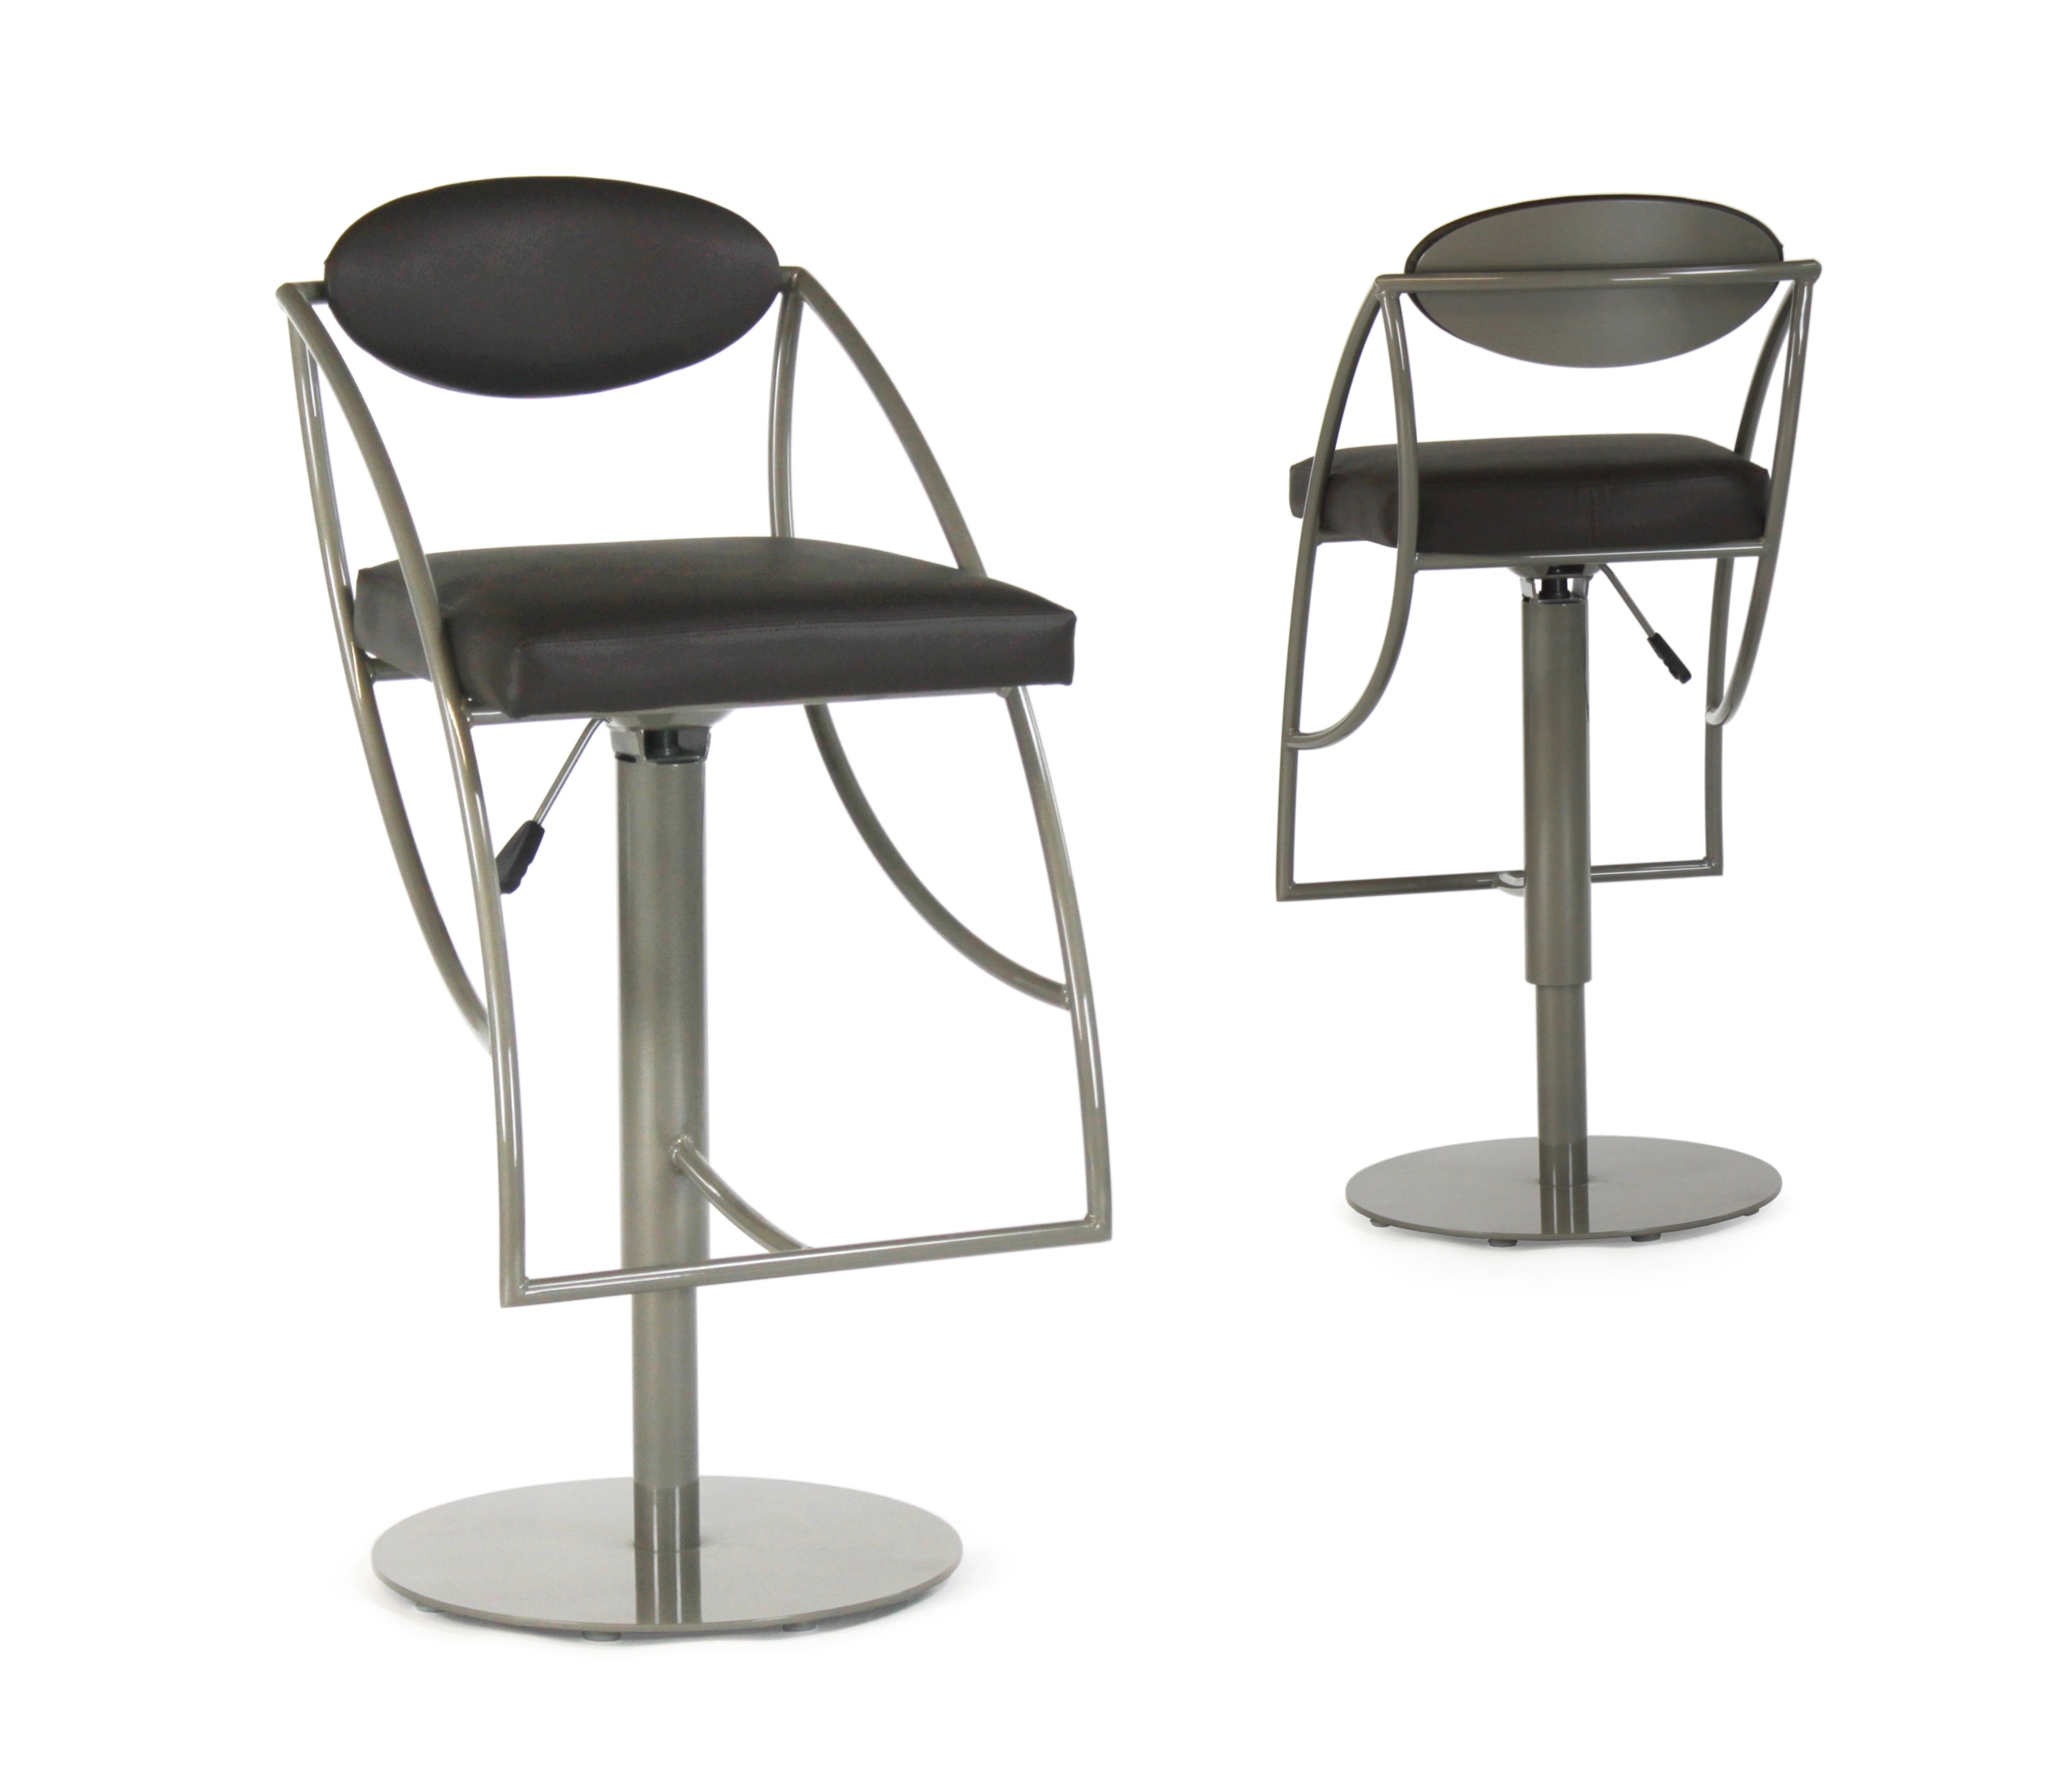 Onica Bar Stool